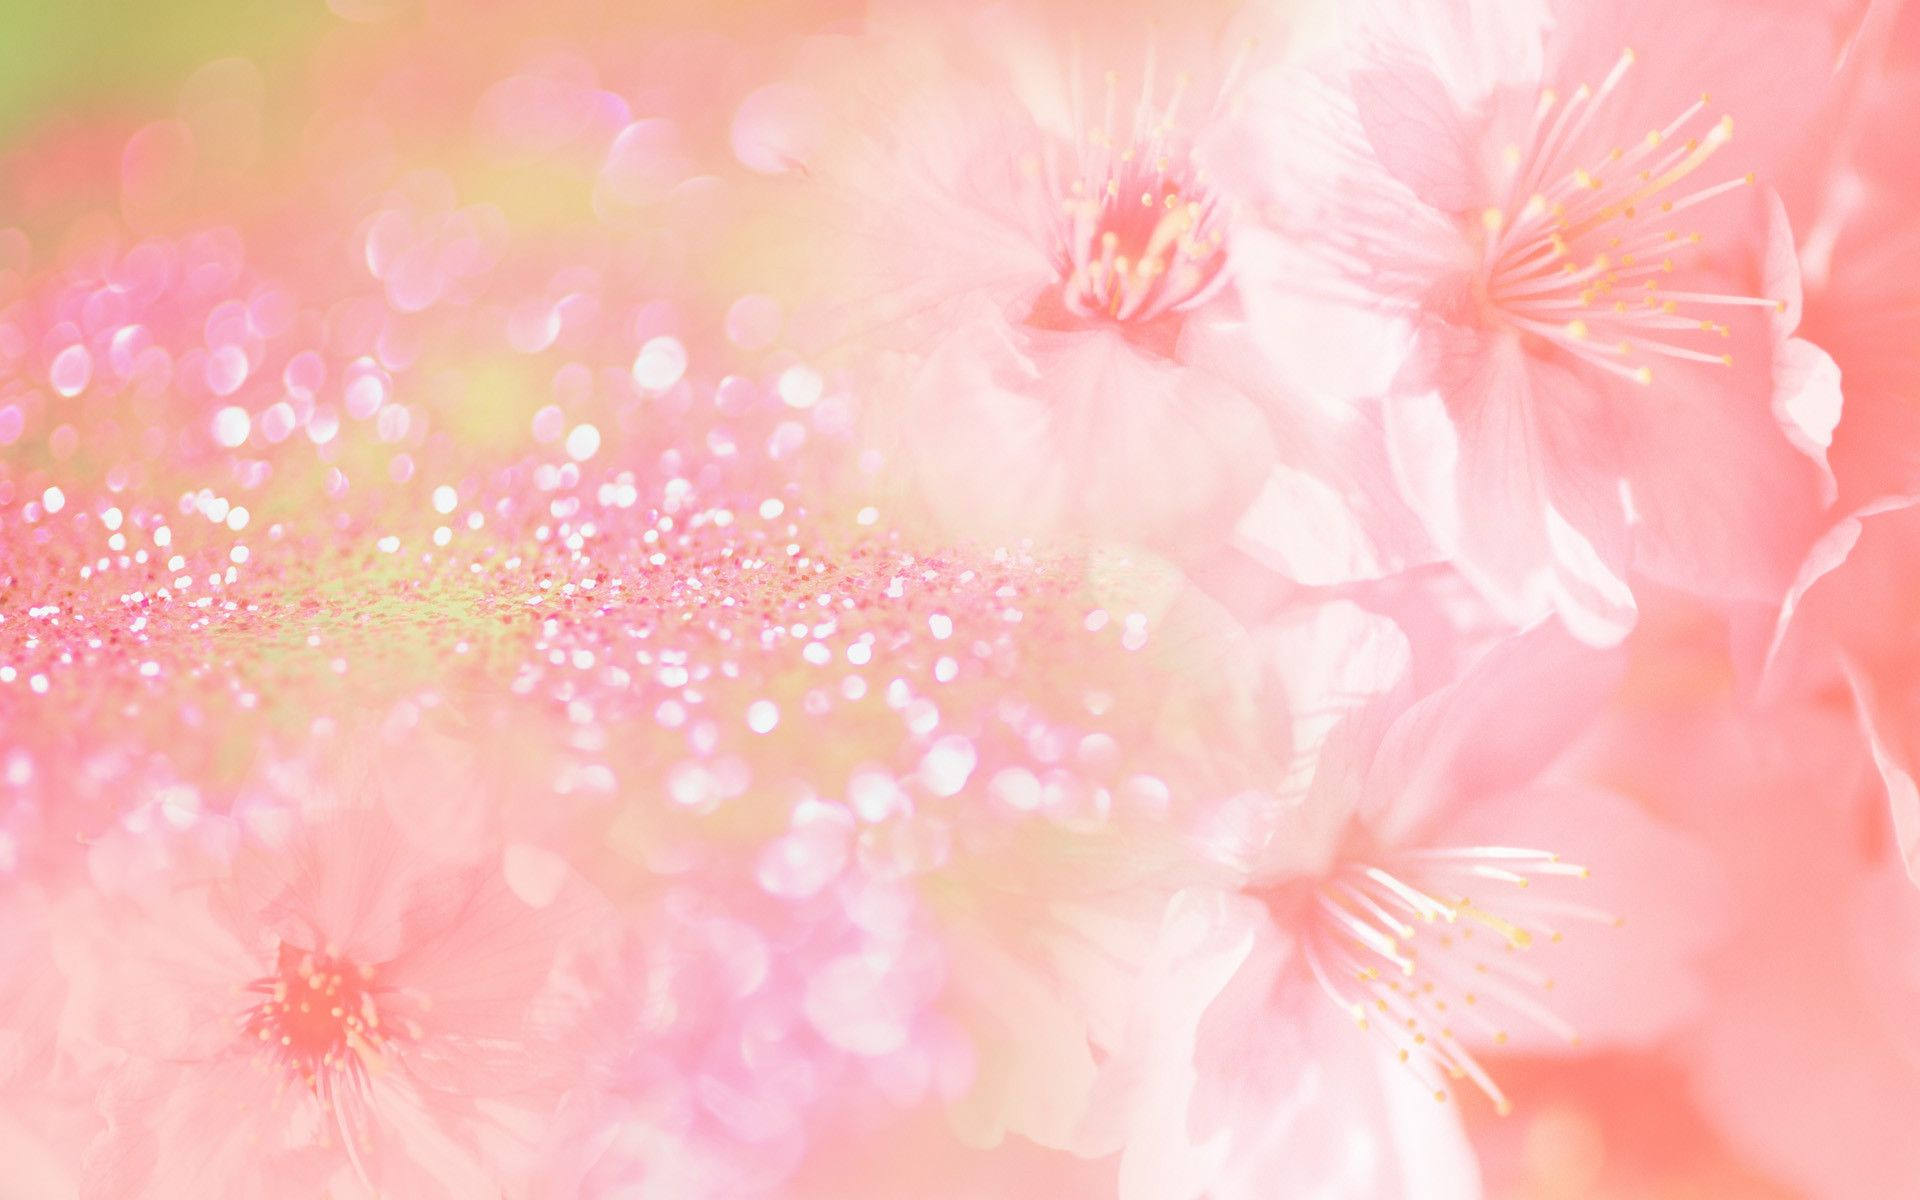 20+ Fabulous Pink Flower Backgrounds | Free & Premium ...